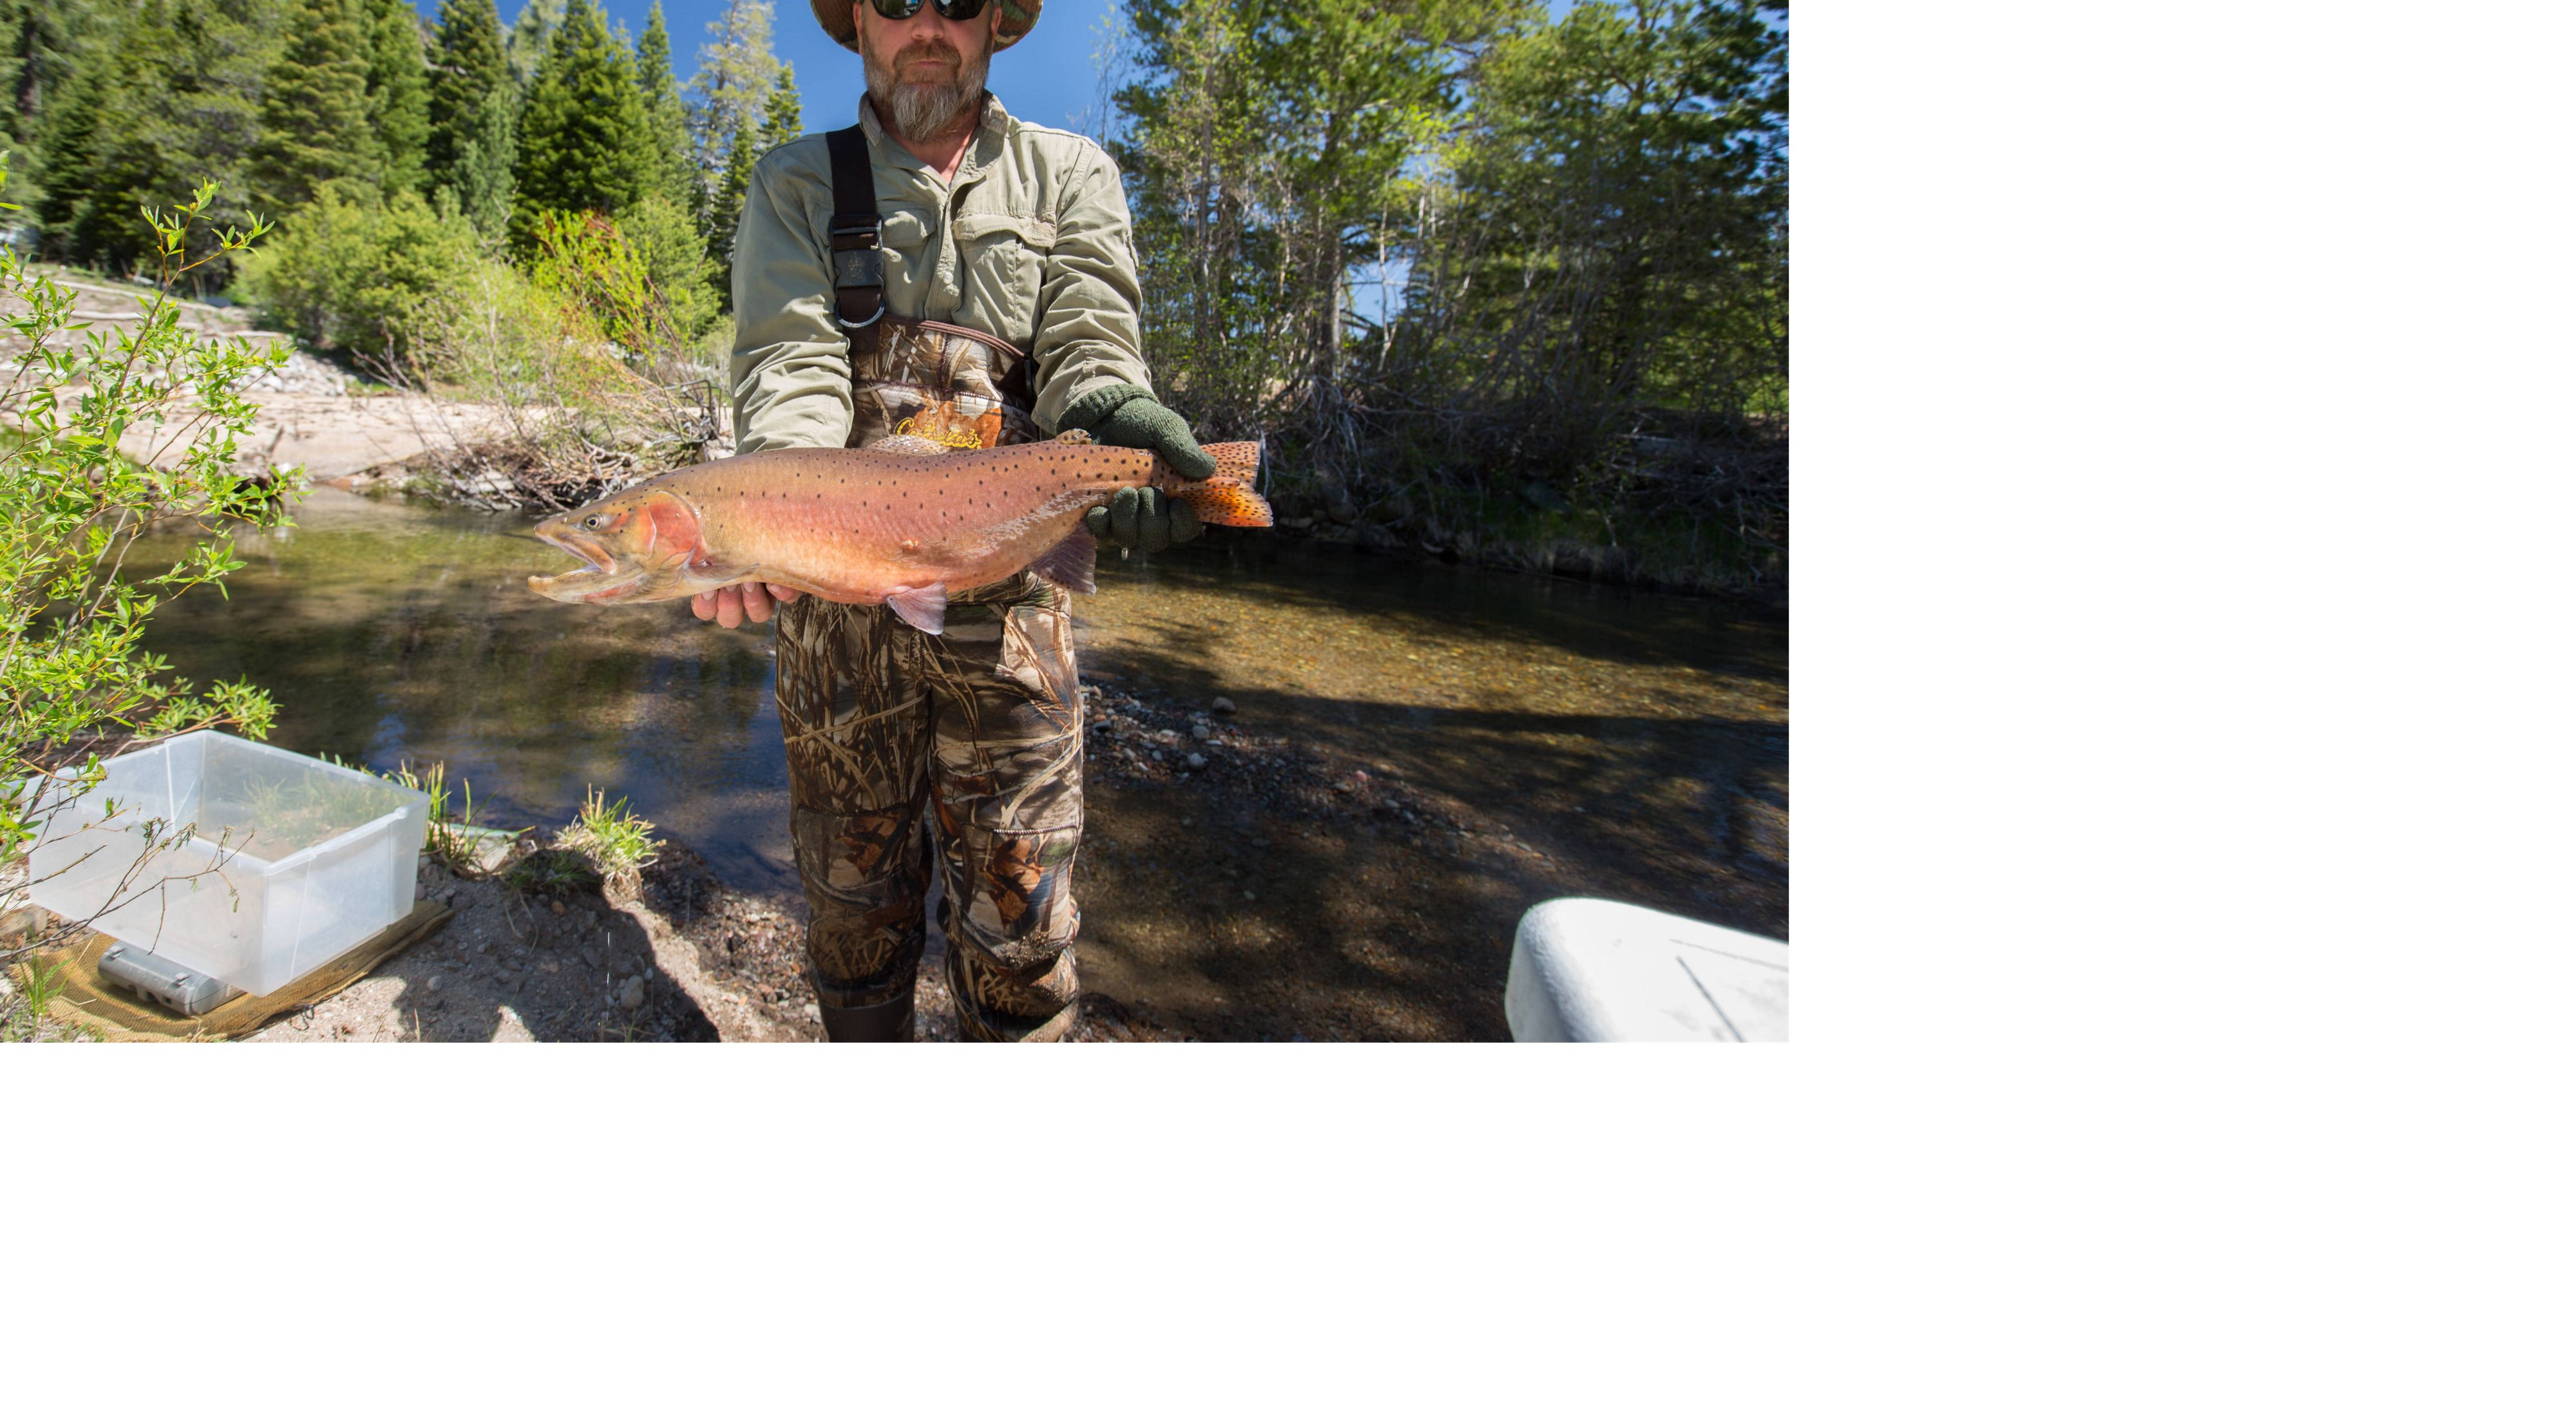 Lahontan cutthroat trout at Independence Lake Preserve in the Northern Sierra Nevada.